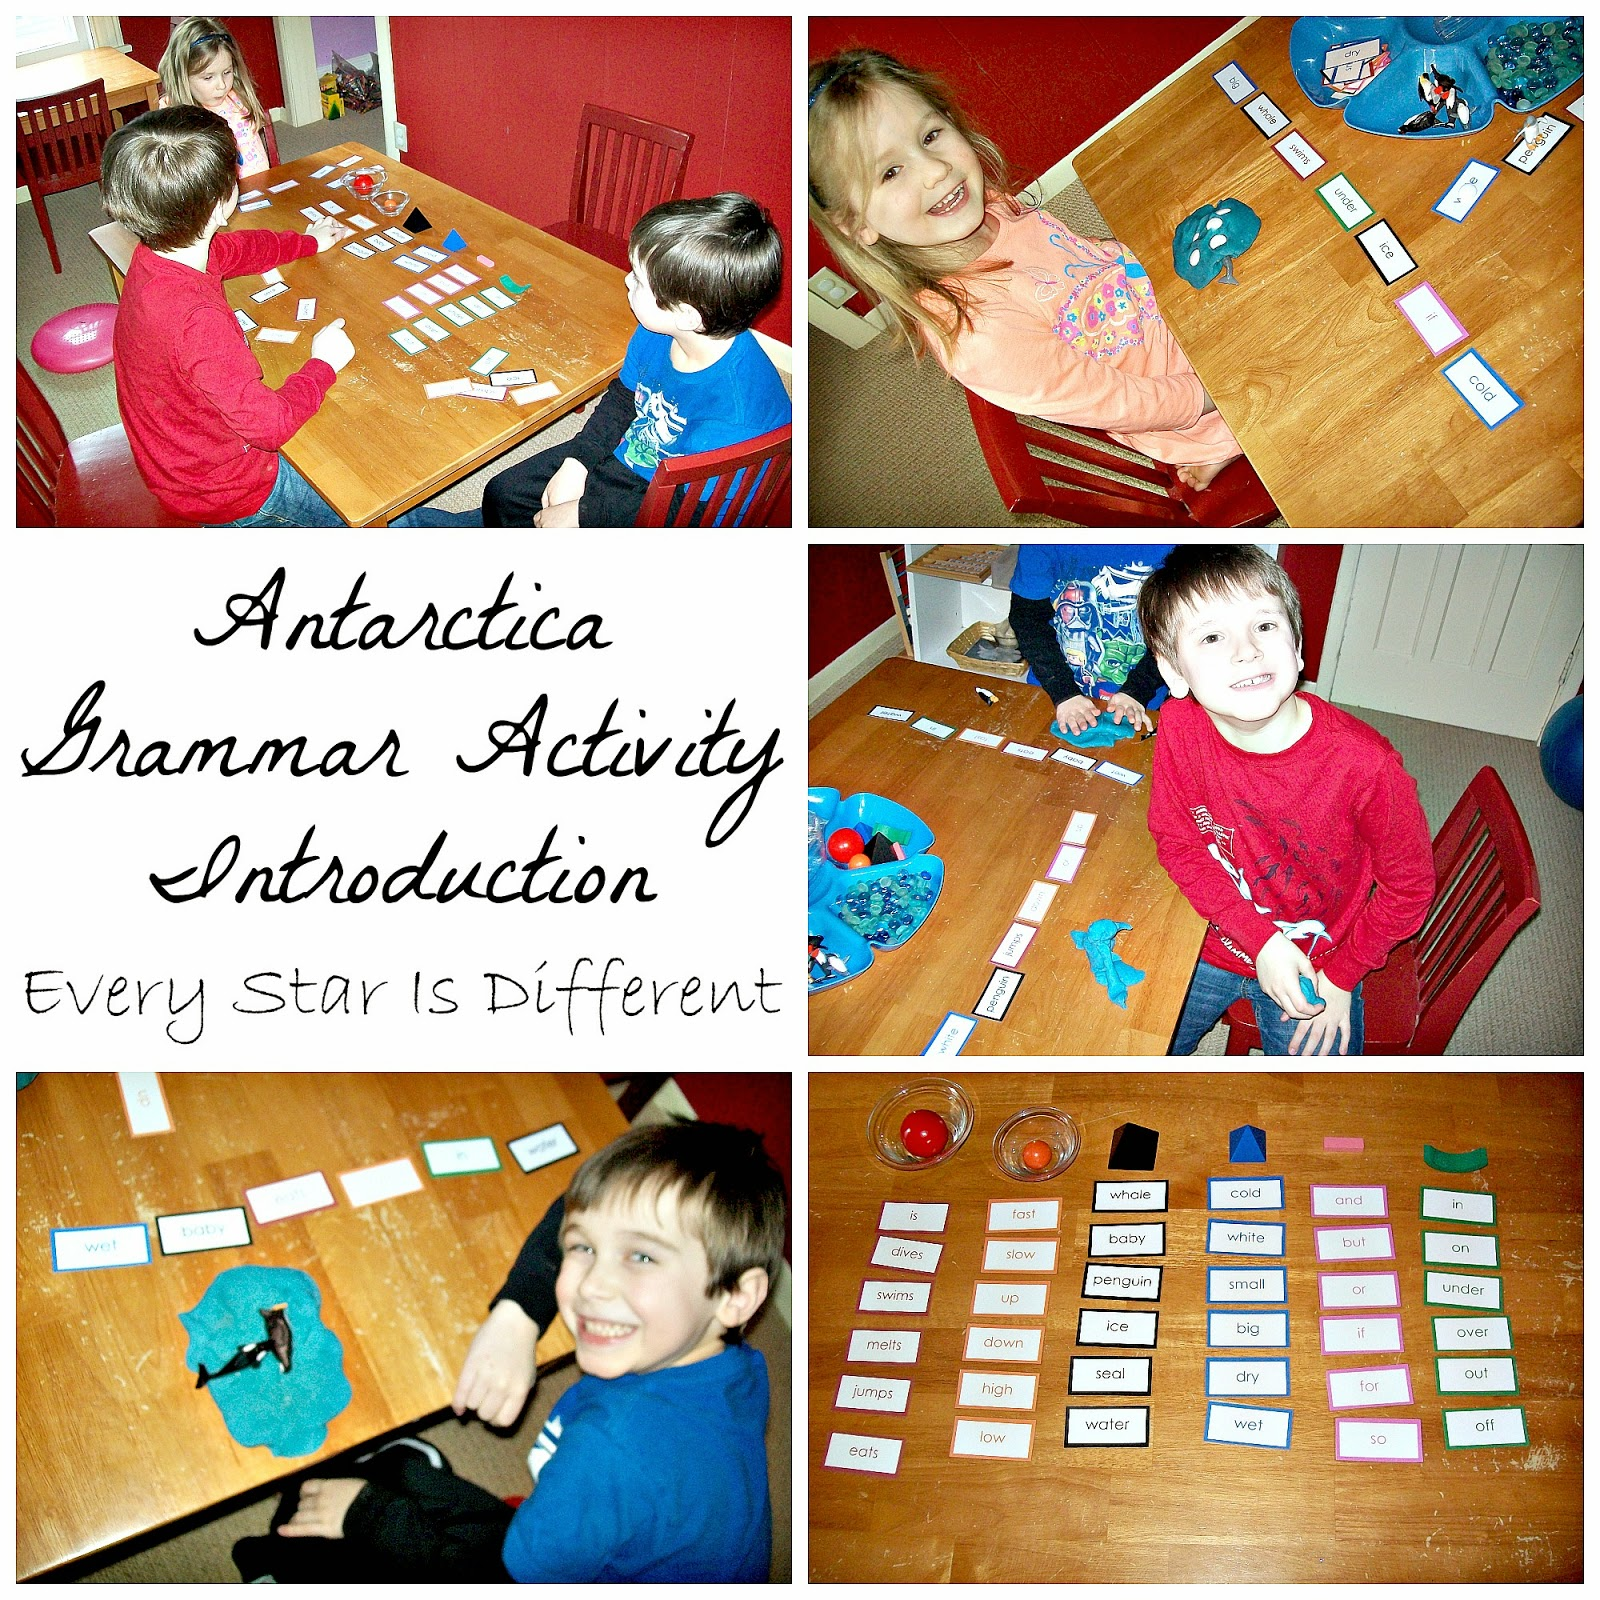 Antarctica Grammar Activity